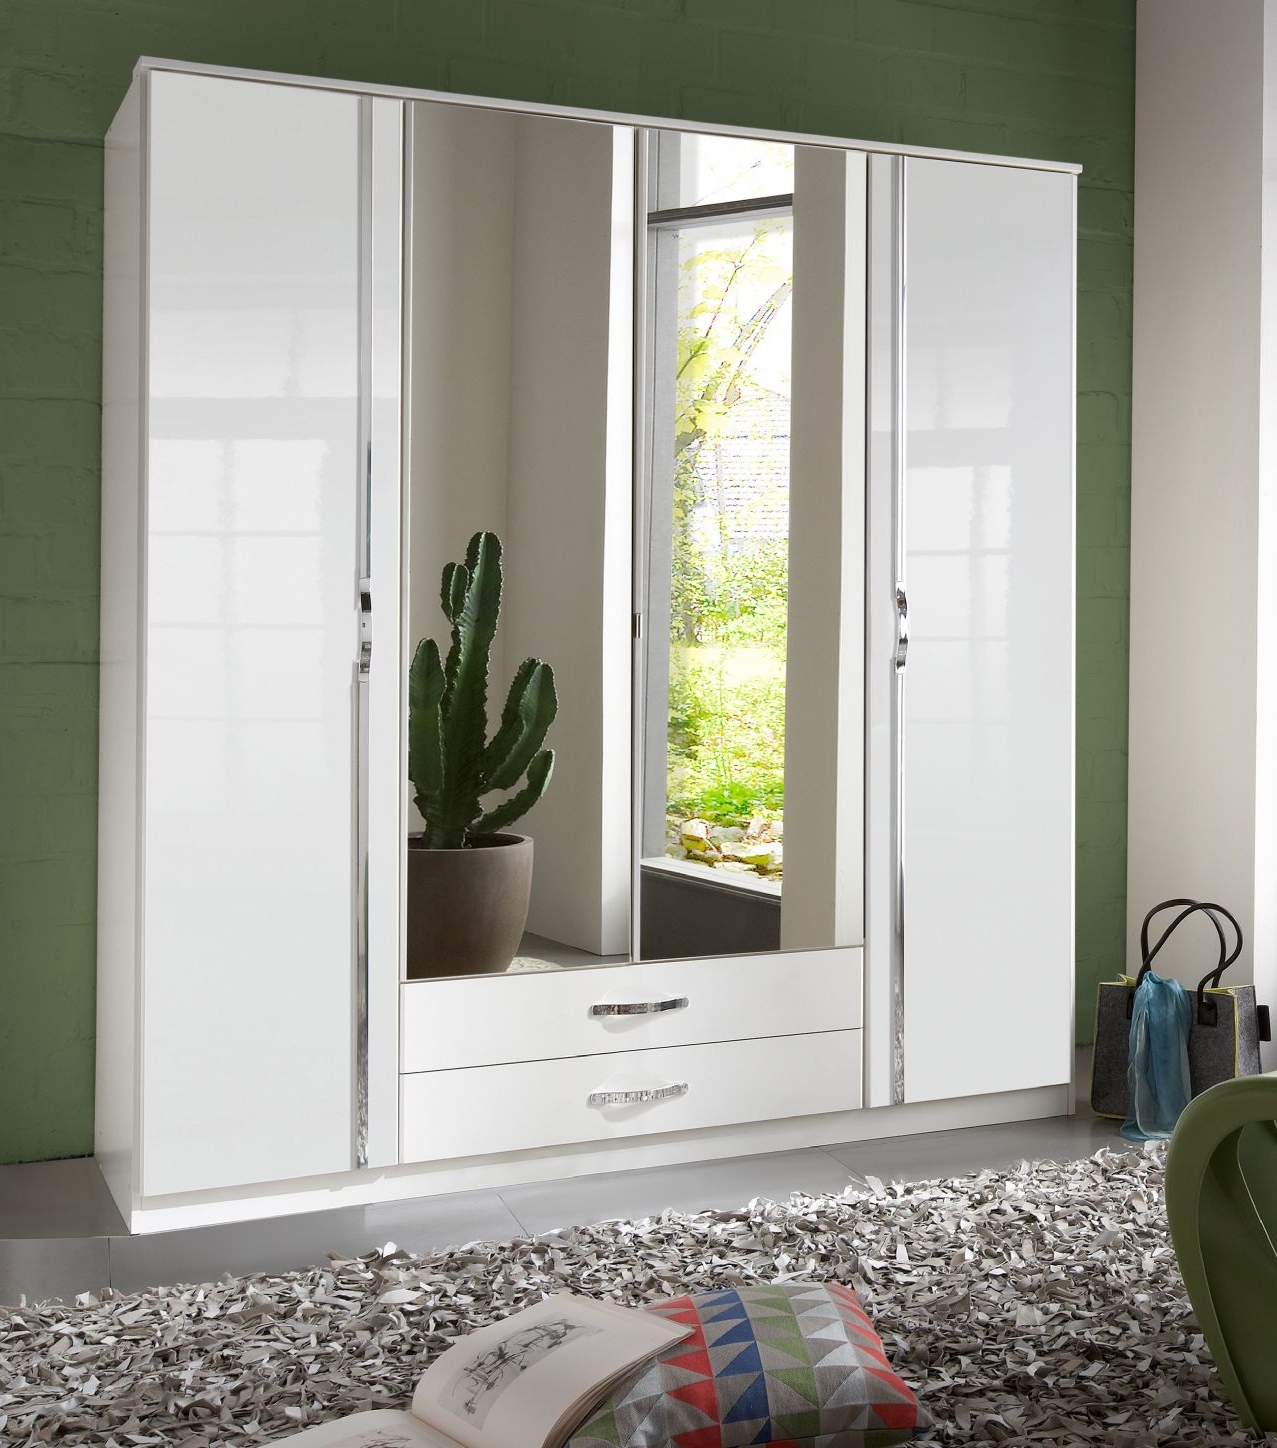 Latest Arosa 4 Door White Gloss Wardrobe – German Wardrobes Inside Wardrobes White Gloss (View 5 of 15)